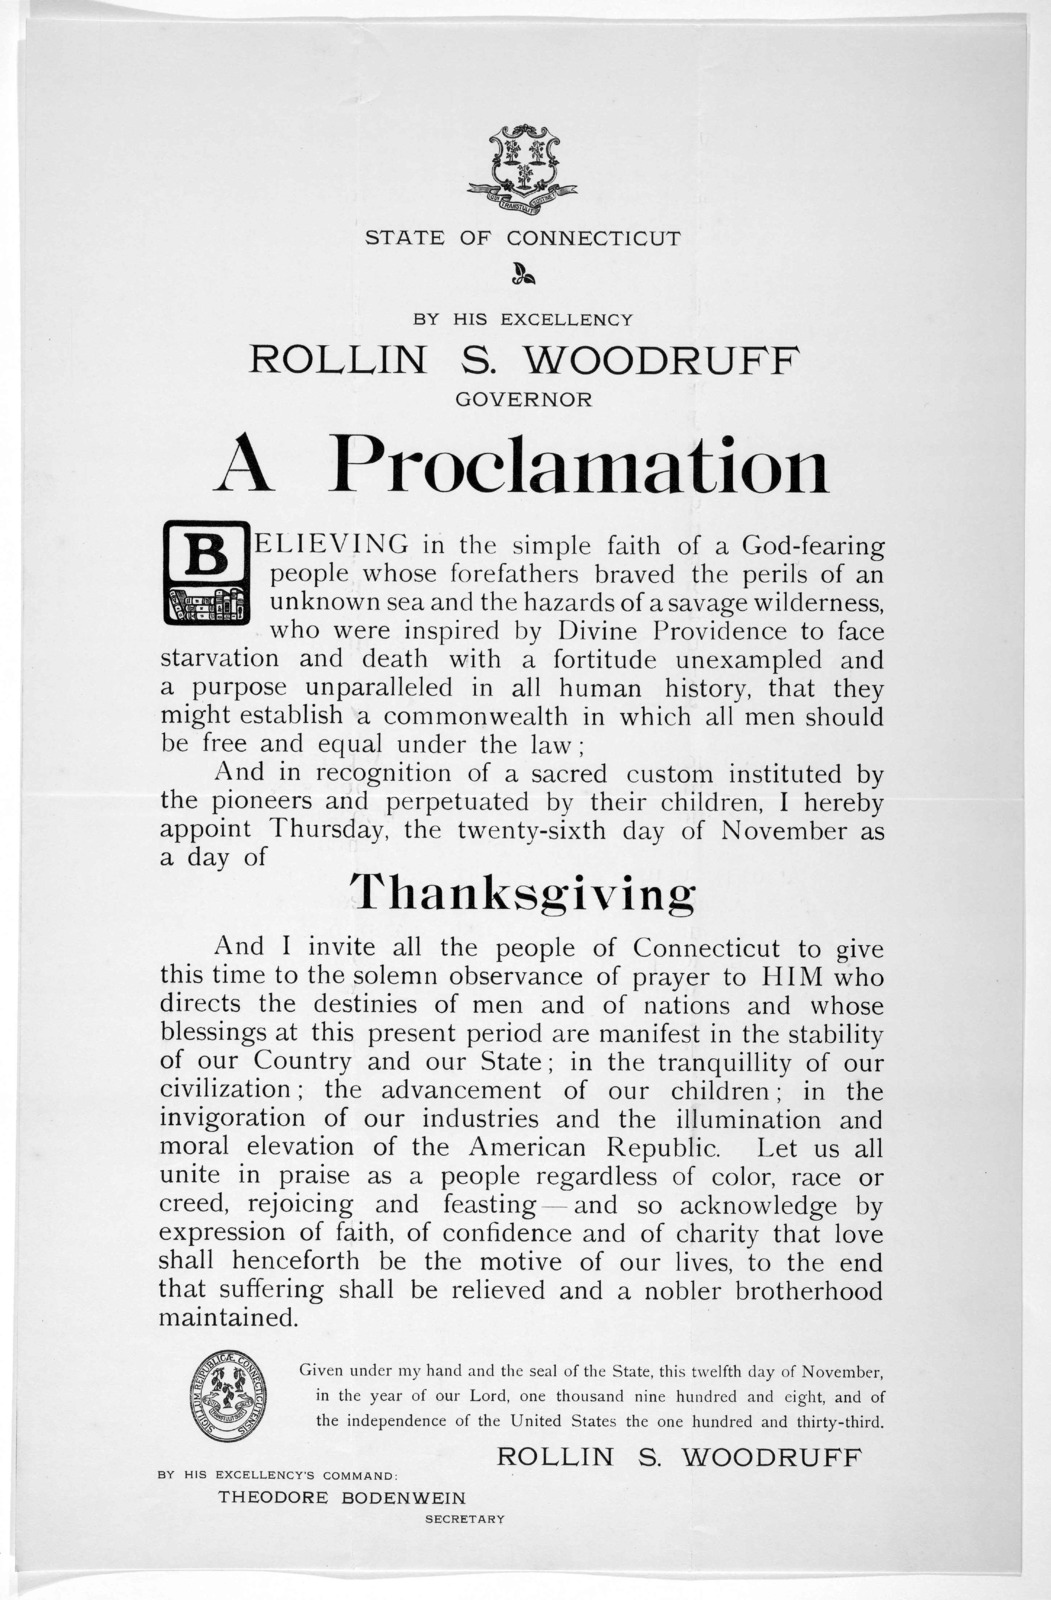 [Arms] State of Connecticut. By His Excellency Rollin S. Woodruff Governor, A proclamation ... I hereby appoint Thursday, the twenty-sixth day of November as a day of thanksgiving ... Given under my hand ... this twelfth day of November, in the